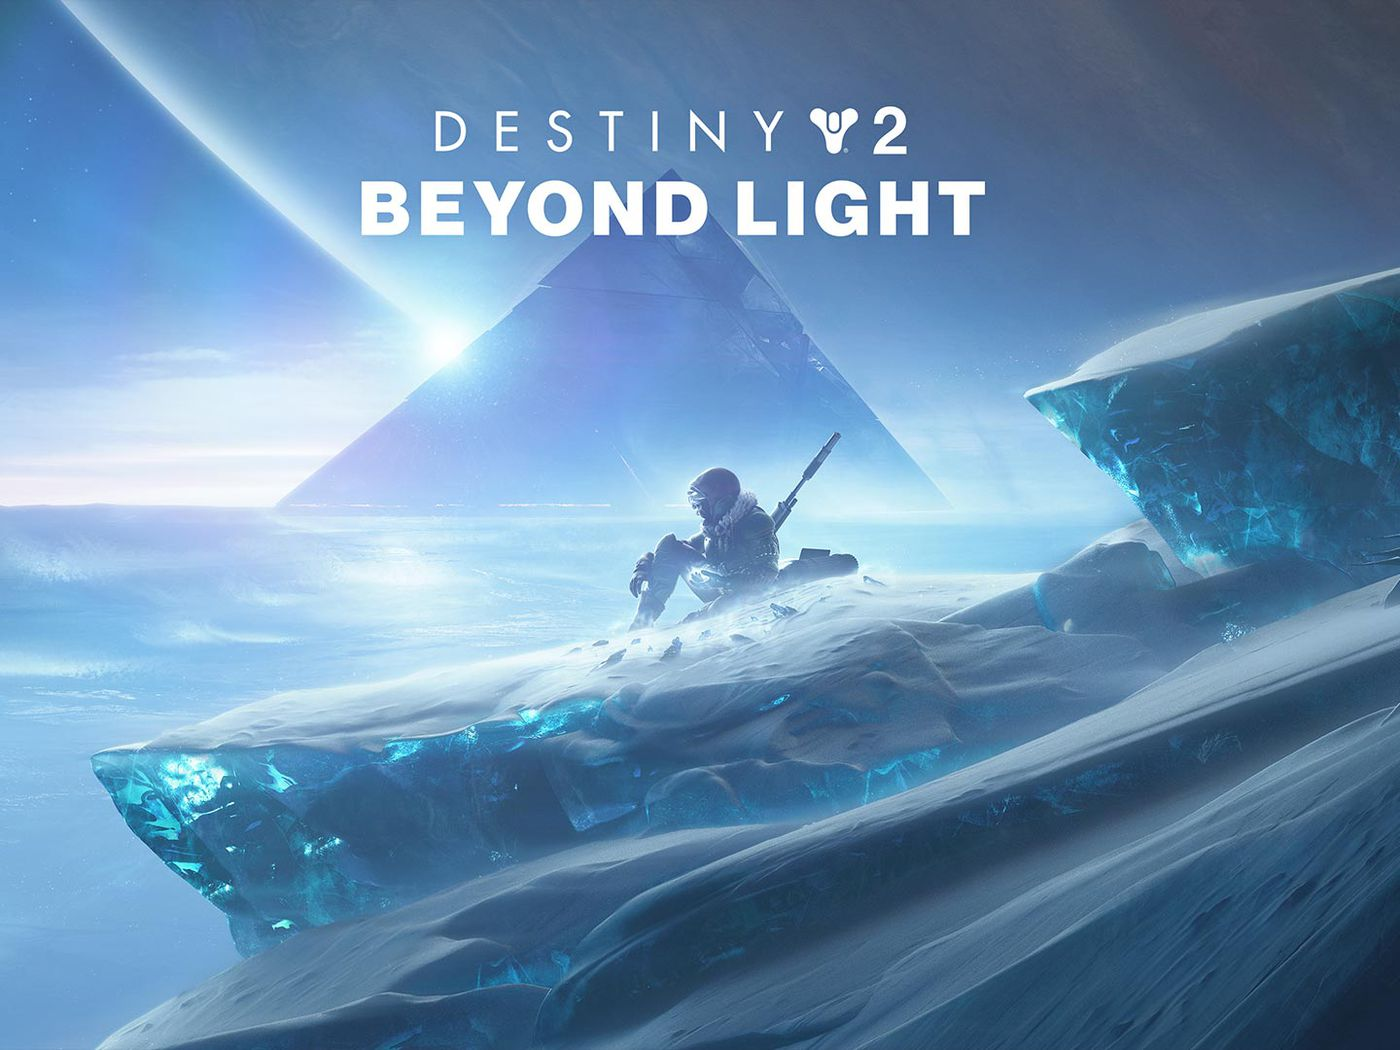 destiny beyond light